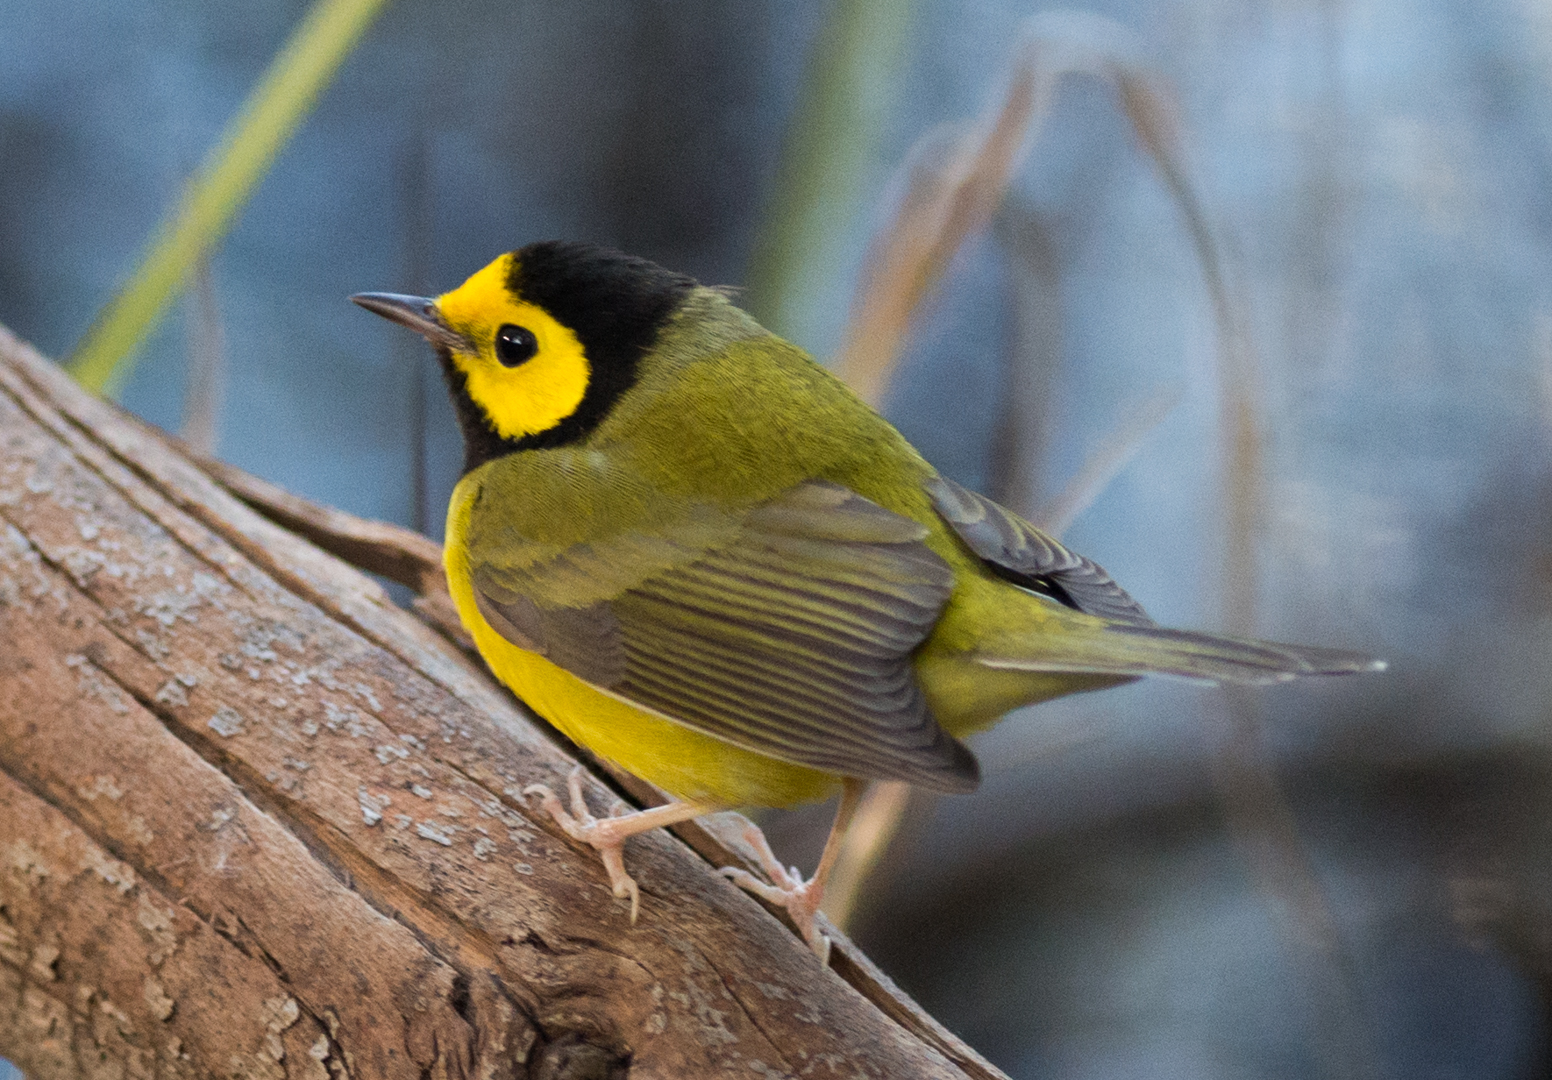 Featured Photo 18: Hooded Warbler (Wilsonia citrinaI)  EQ: D800 300mm f/2.8 VR on  Taken: 1-16-15 10:05  Setting: 300mm, 1/320s, f/2.8, ISO1600  Condition: Shady in tree grove and under brush